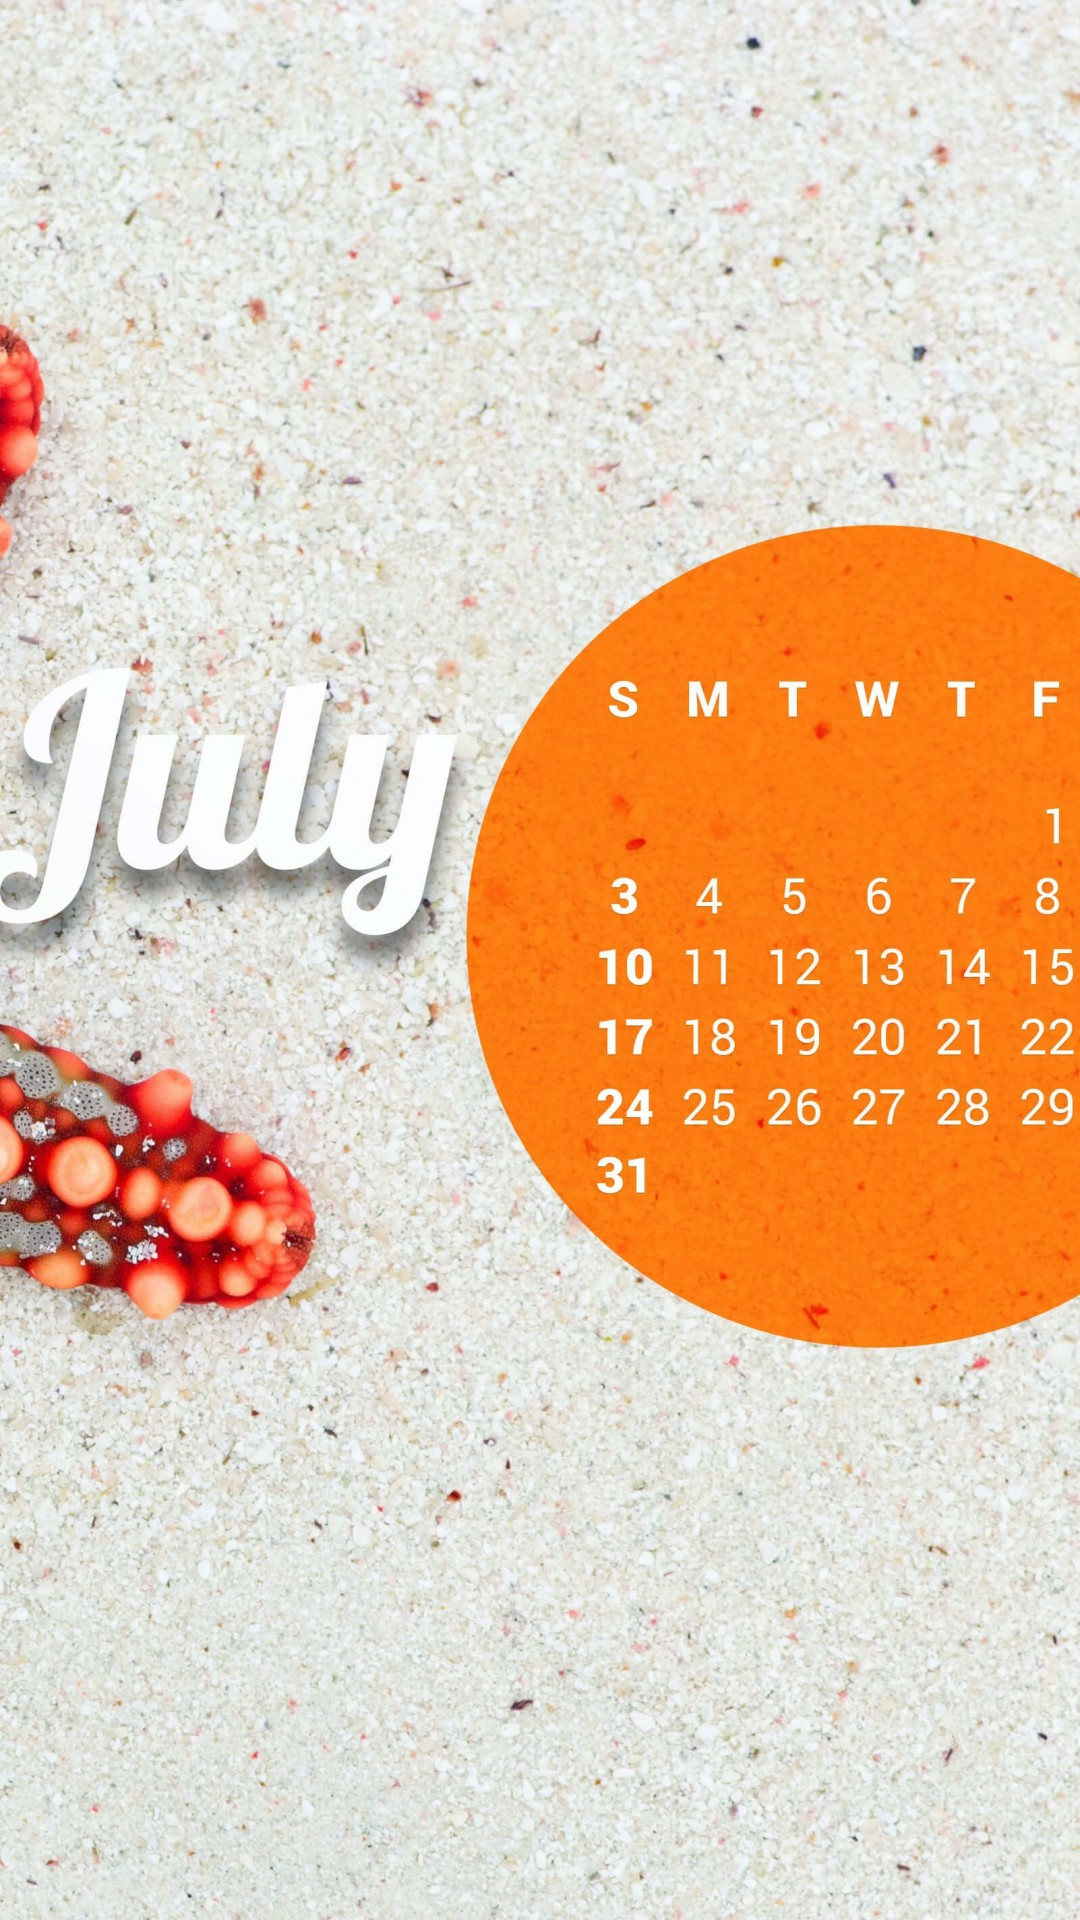 July 2016 Calendar Wallpaper for SAMSUNG Galaxy Note 3